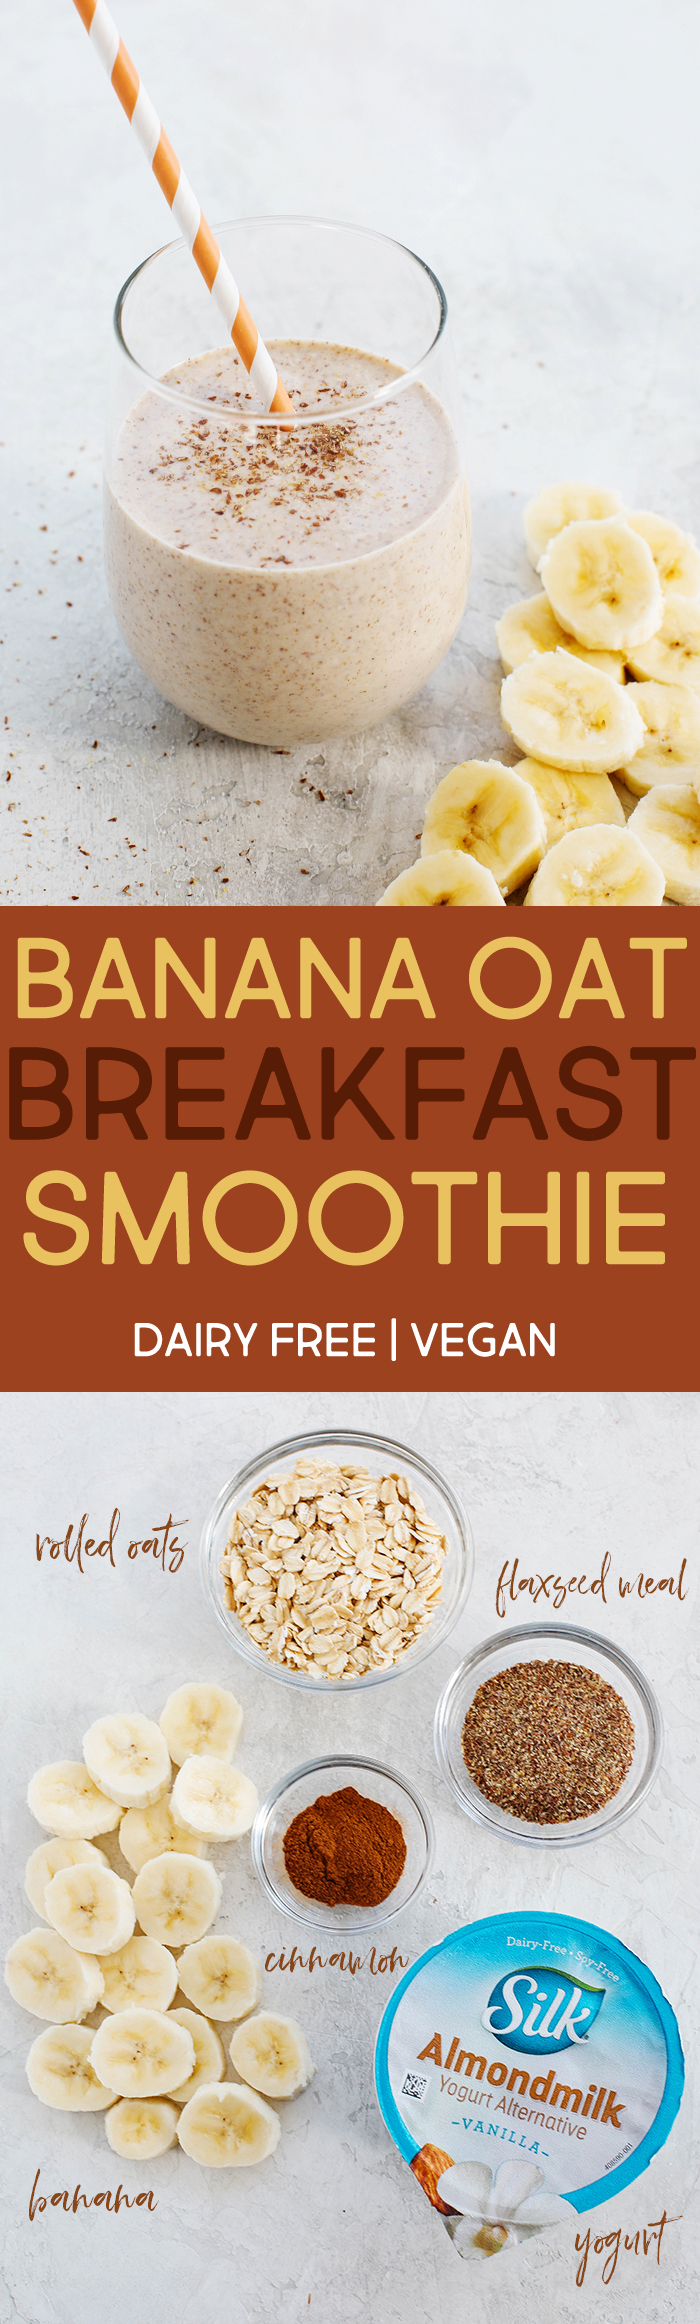 Start your morning off with this thick and creamy Banana Oat Breakfast Smoothie that is healthy, delicious and super quick to make! #dairyfree #vegan